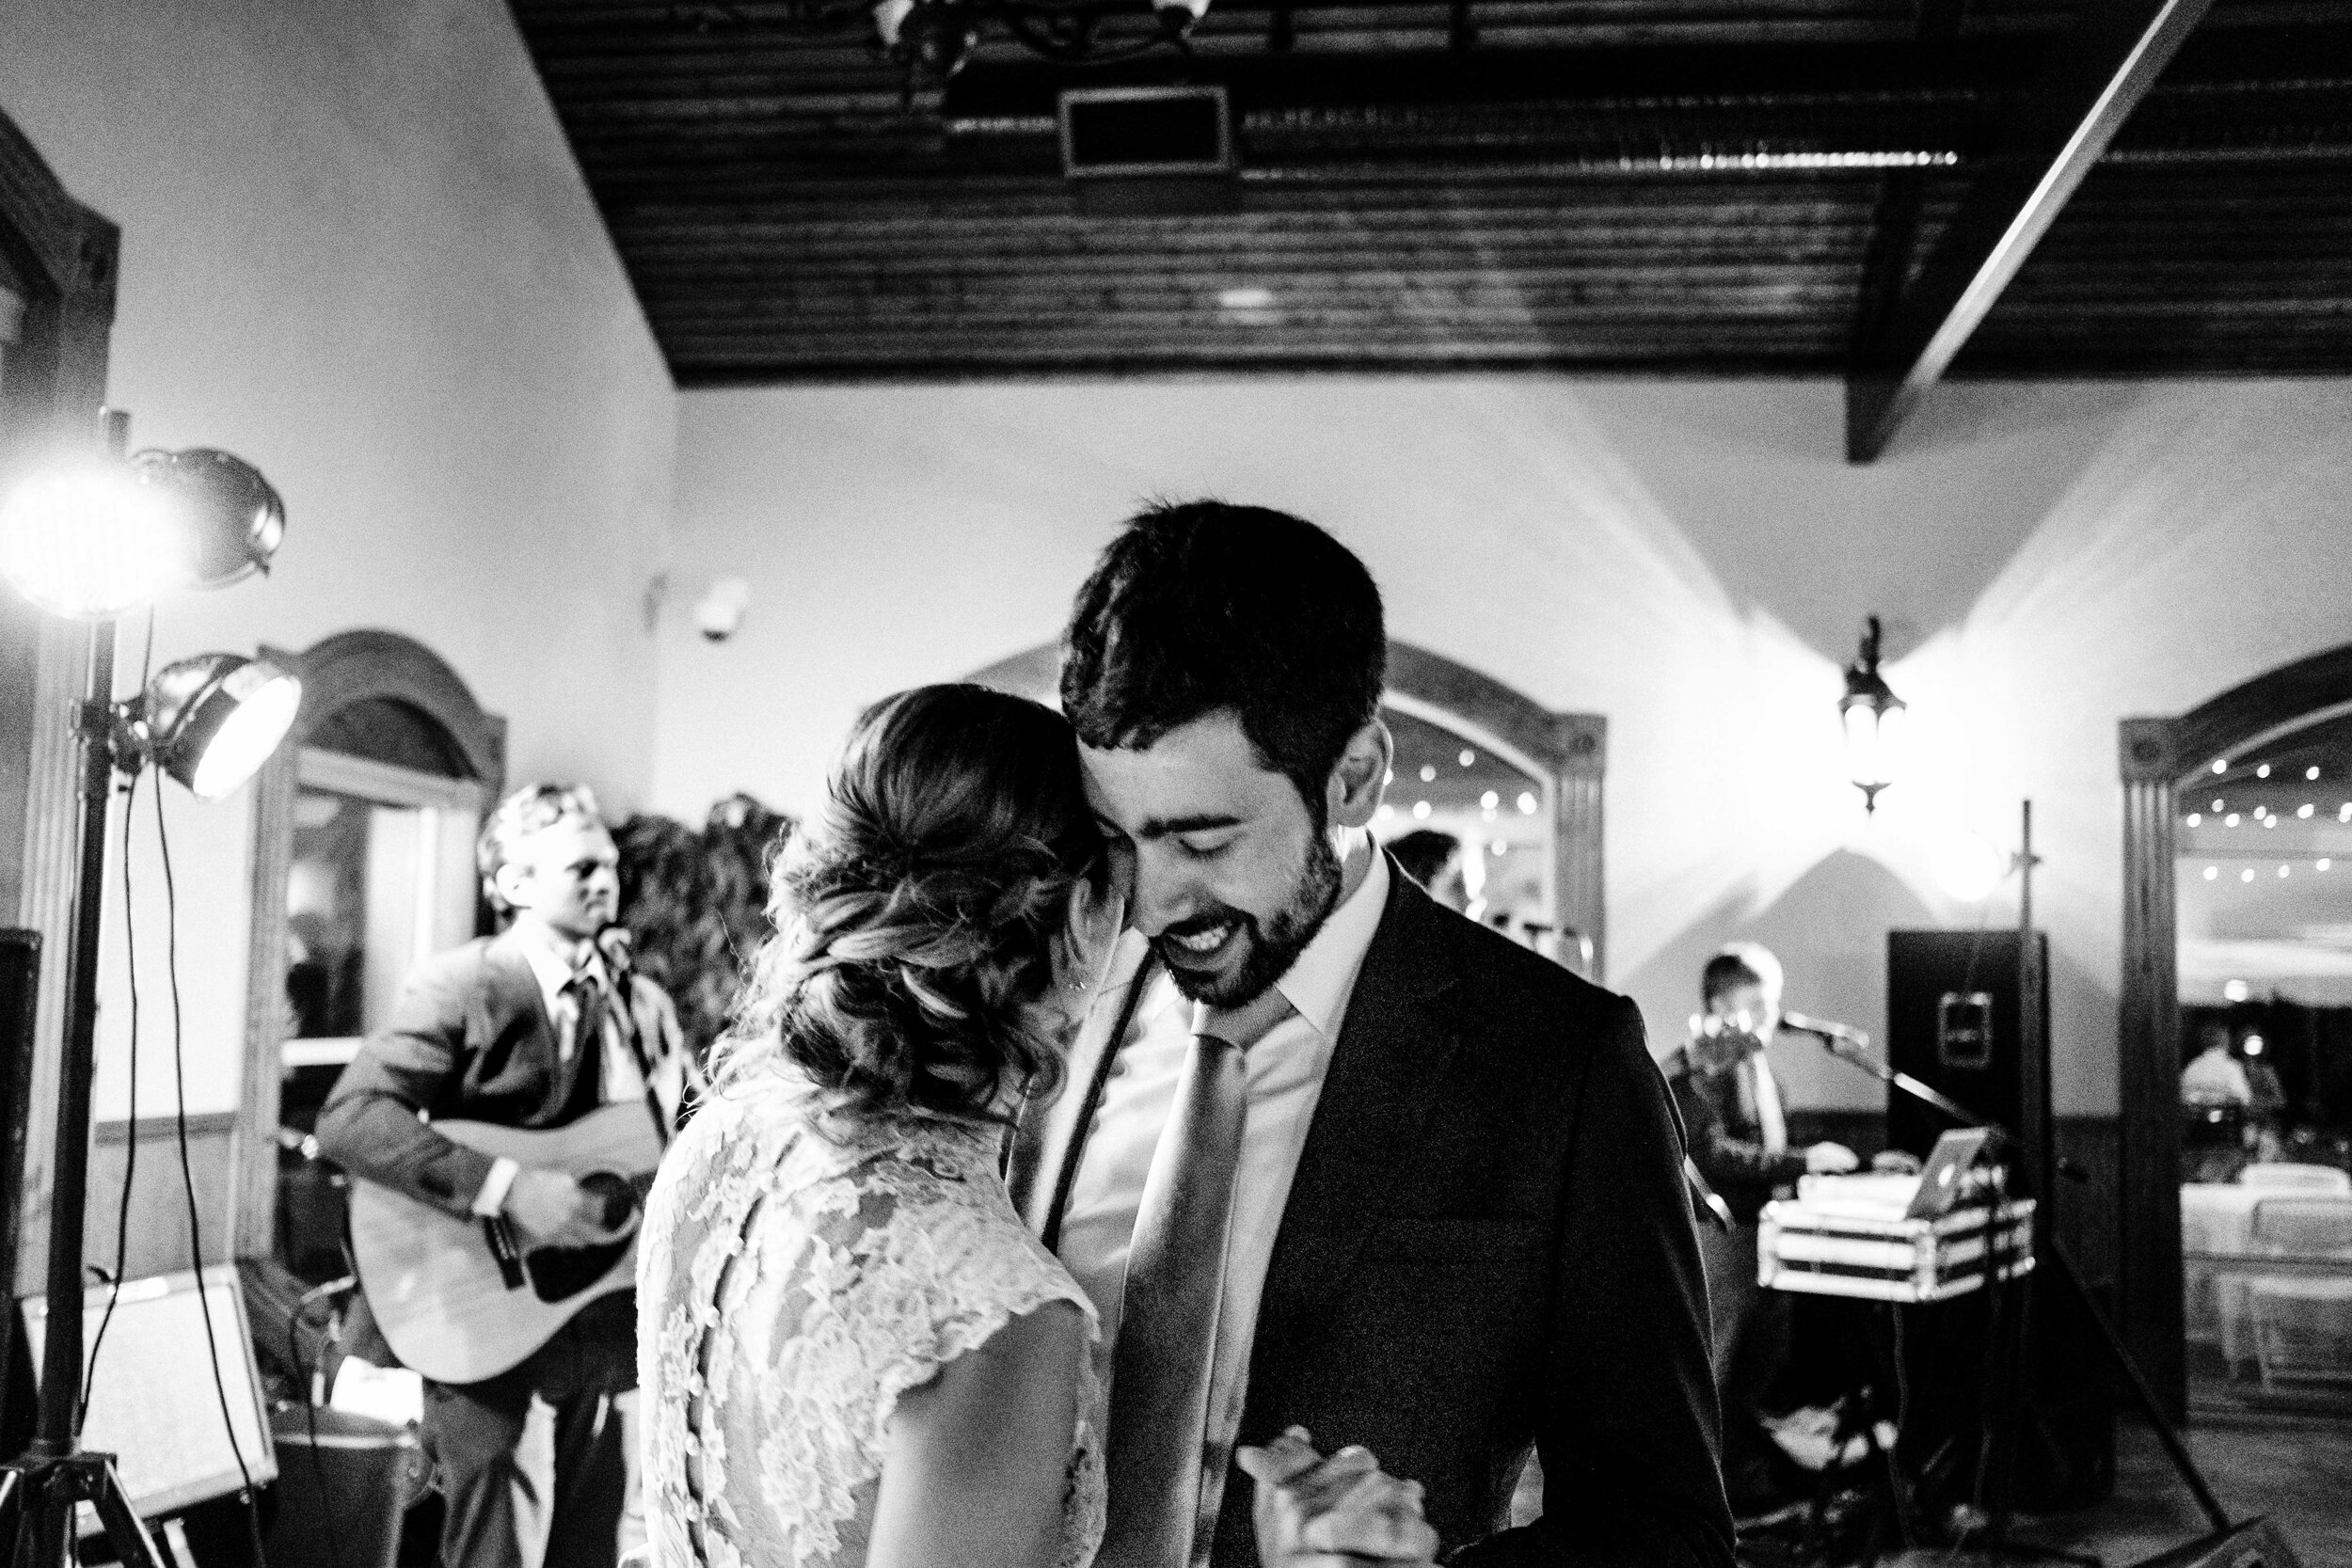 rice_gustafson_wedding_2018-06-23_FXP27111_©KevinFerstl2018.jpg